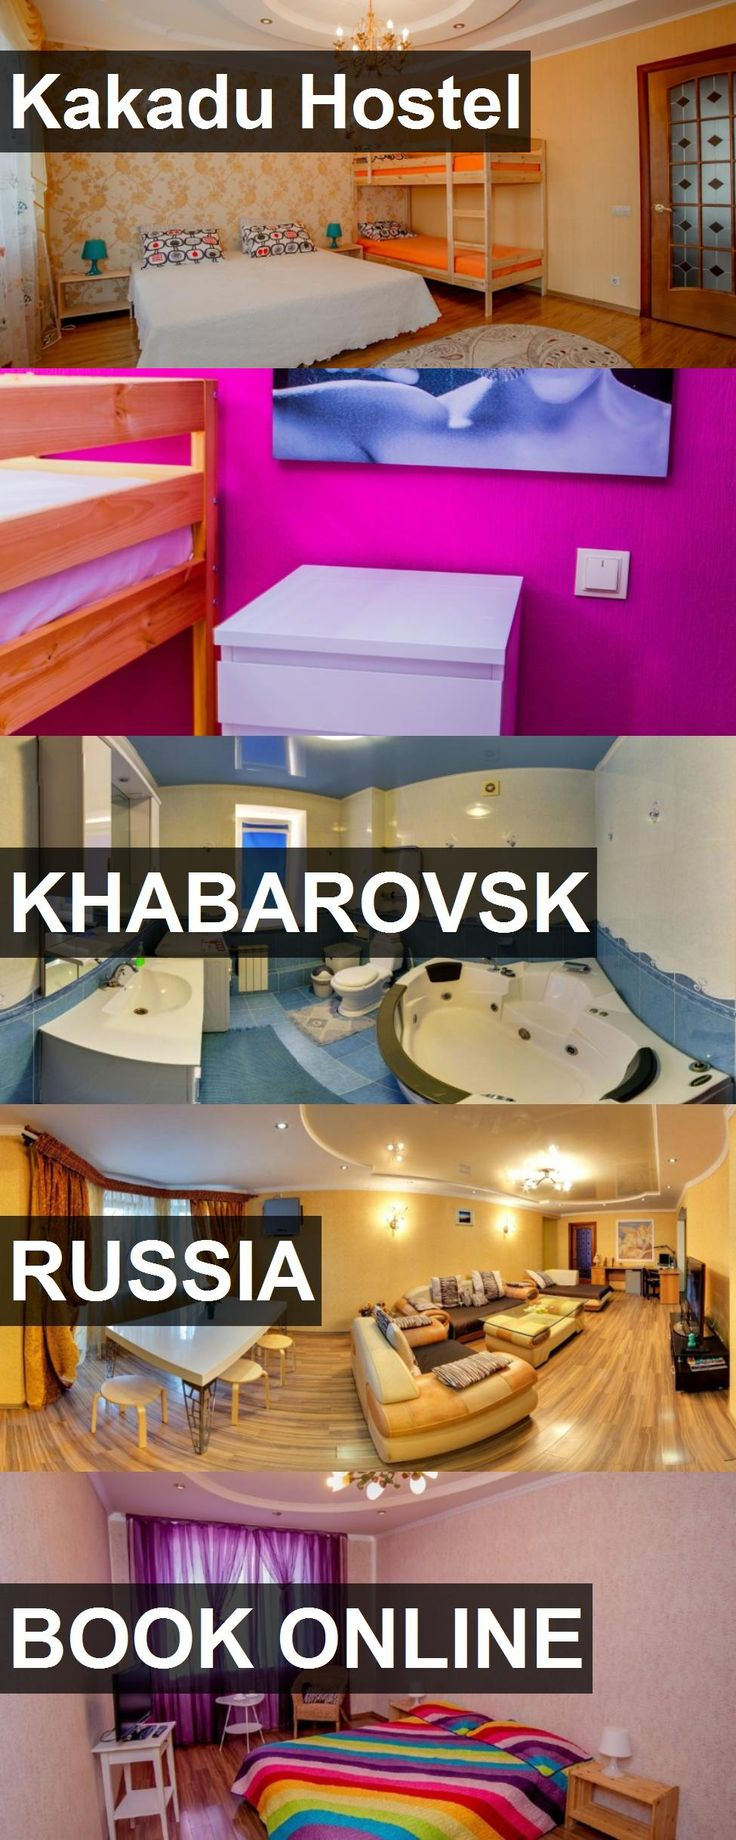 Kakadu Hostel in Khabarovsk, Russia. For more information, photos, reviews and best prices please follow the link. #Russia #Khabarovsk #travel #vacation #hostel